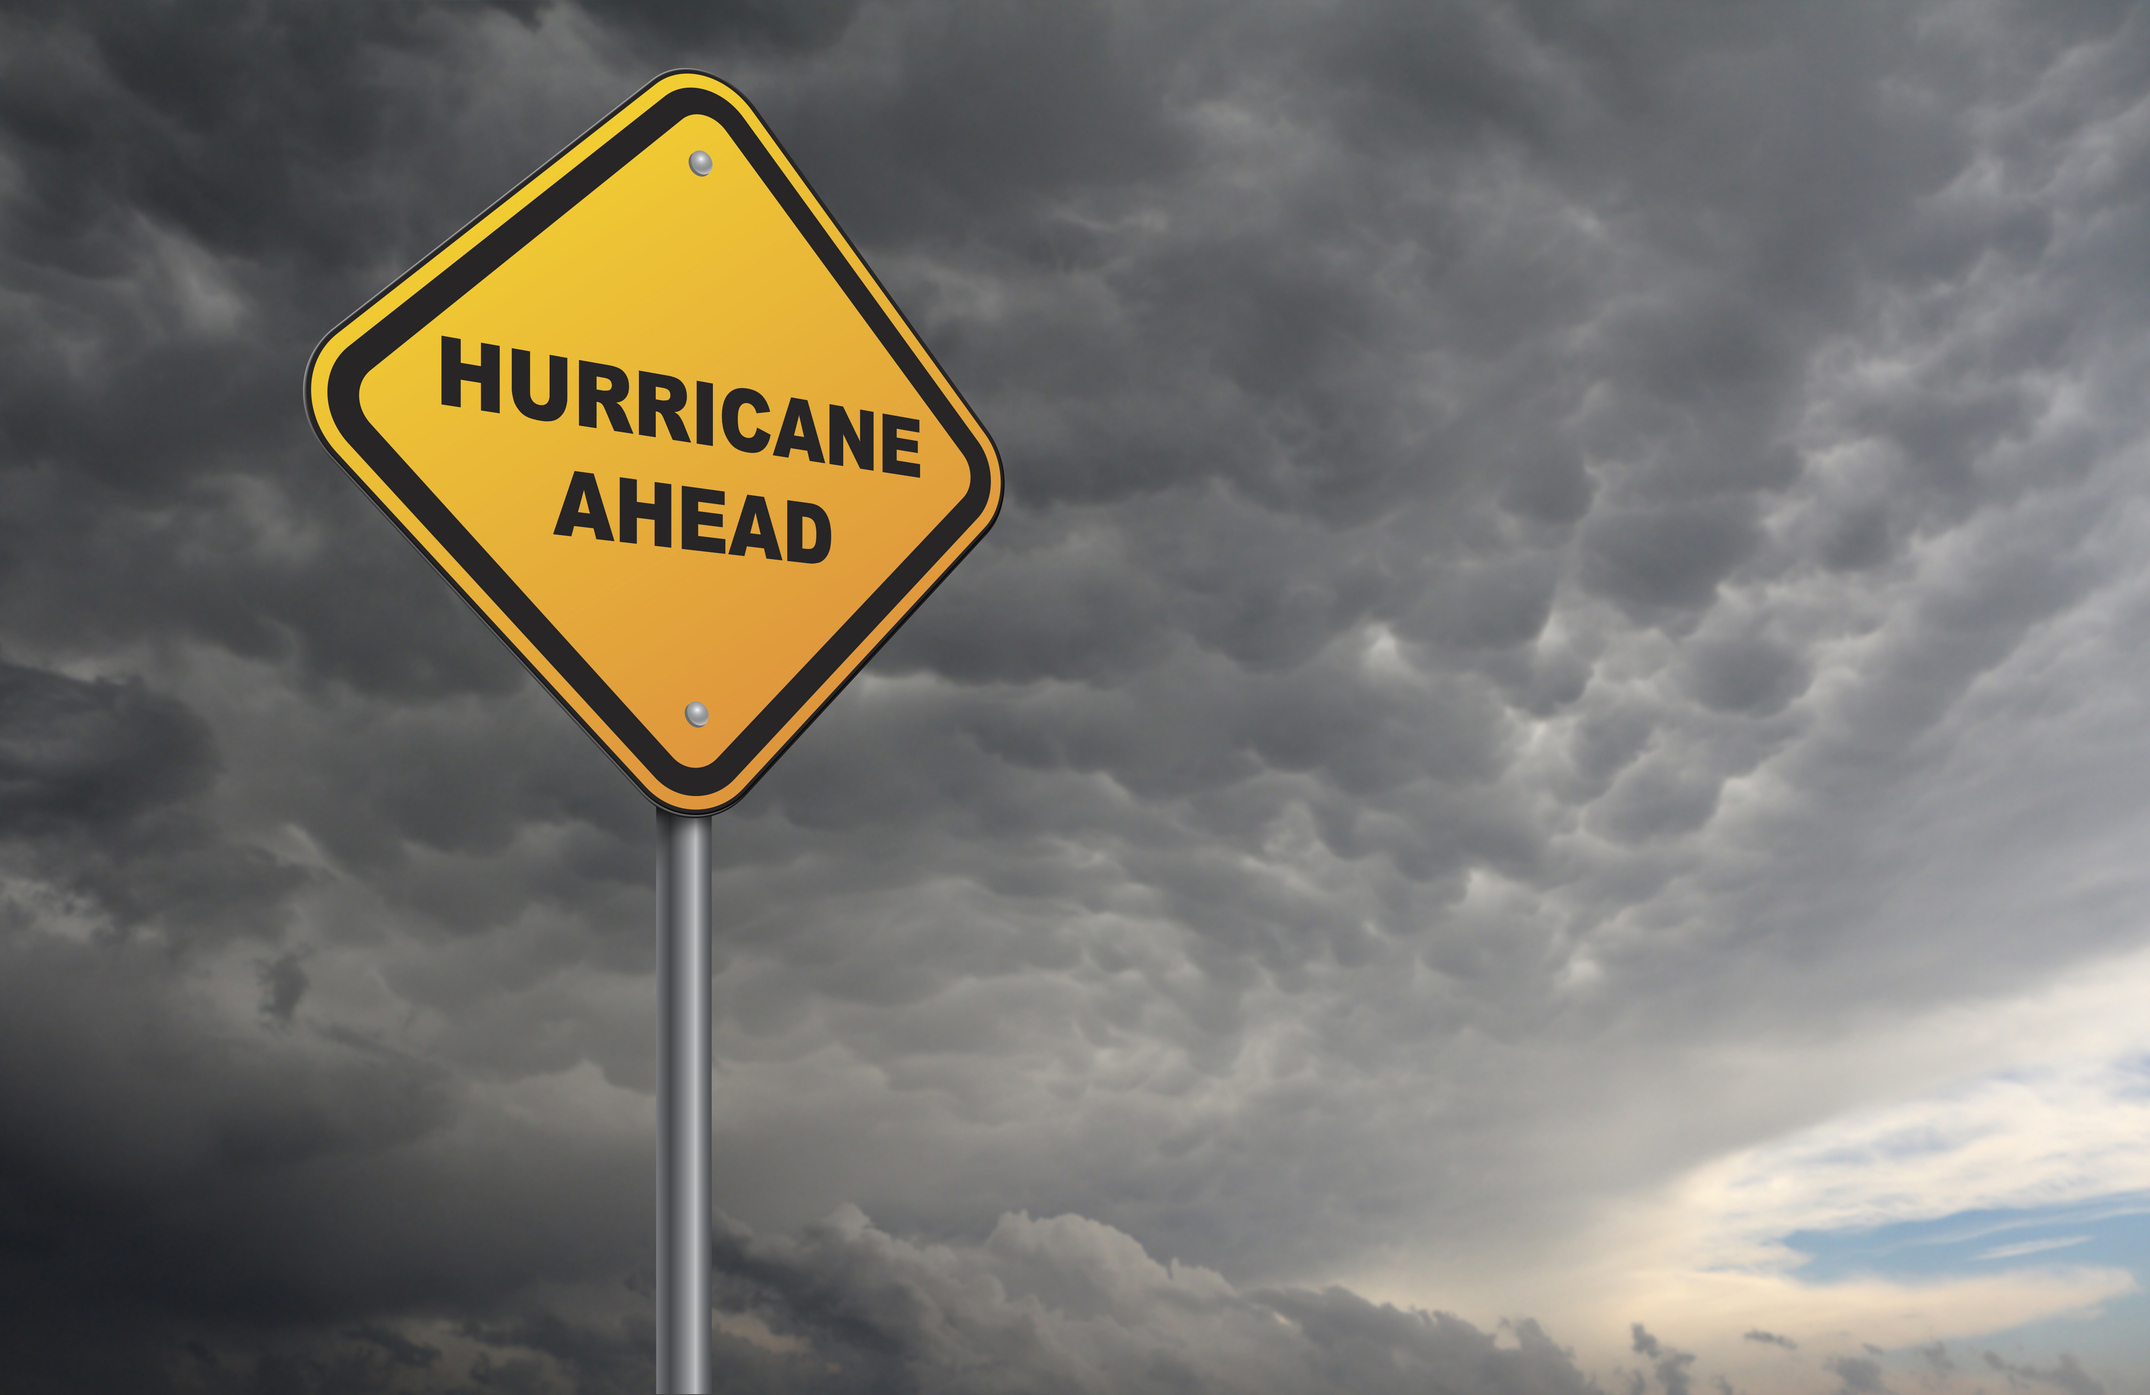 image of hurricane ahead sign